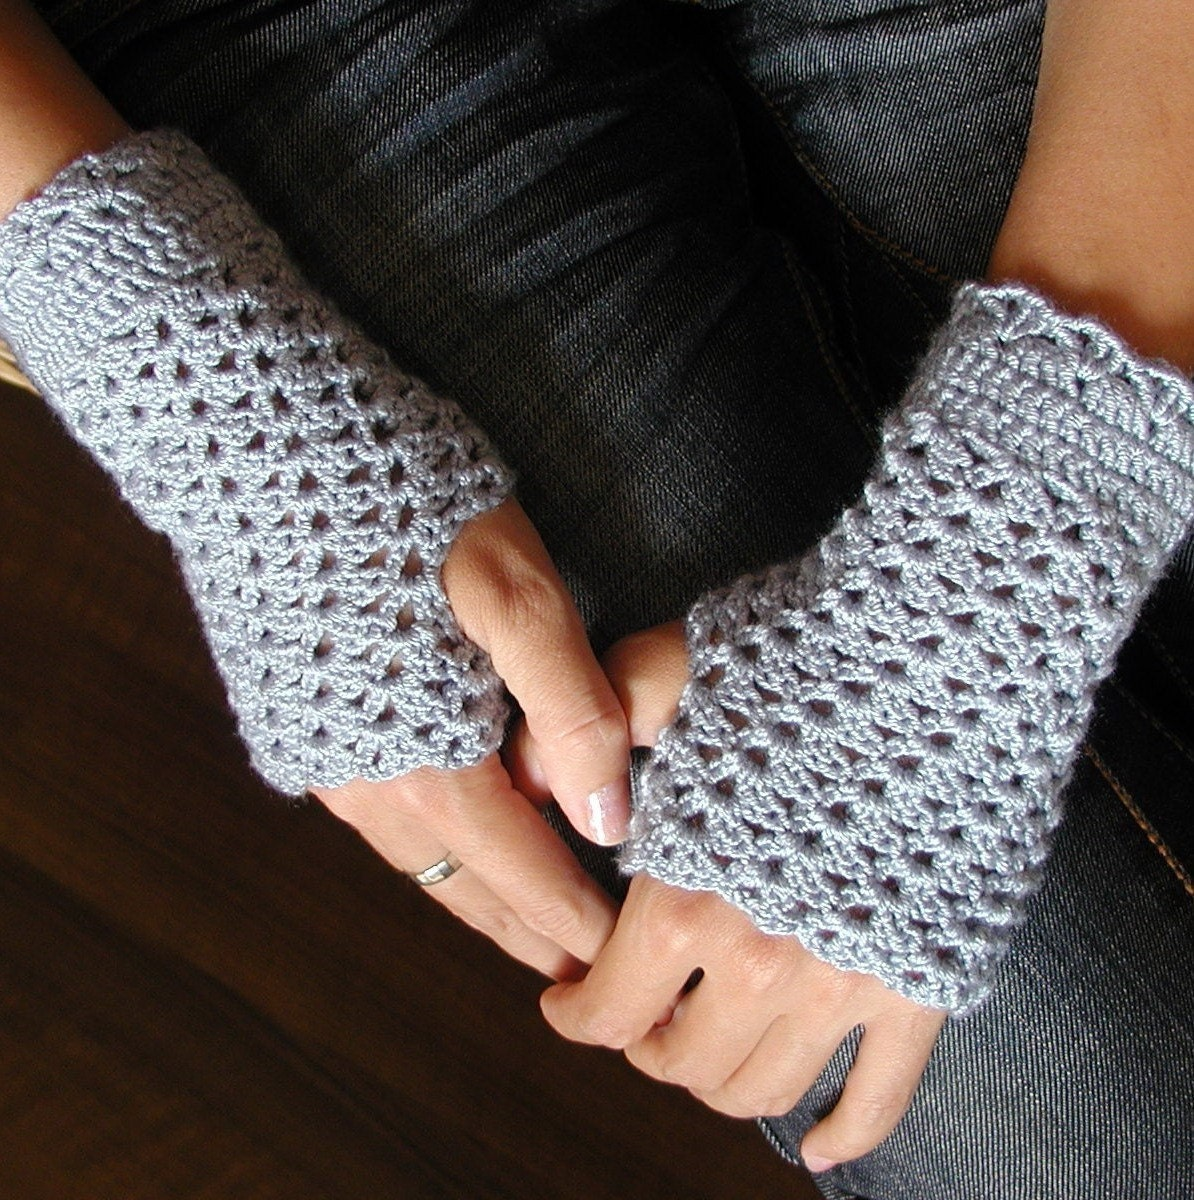 Crochet Patterns Gloves Fingerless : Crocheted Fingerless Mittens PDF Crochet Pattern by FrougesArt